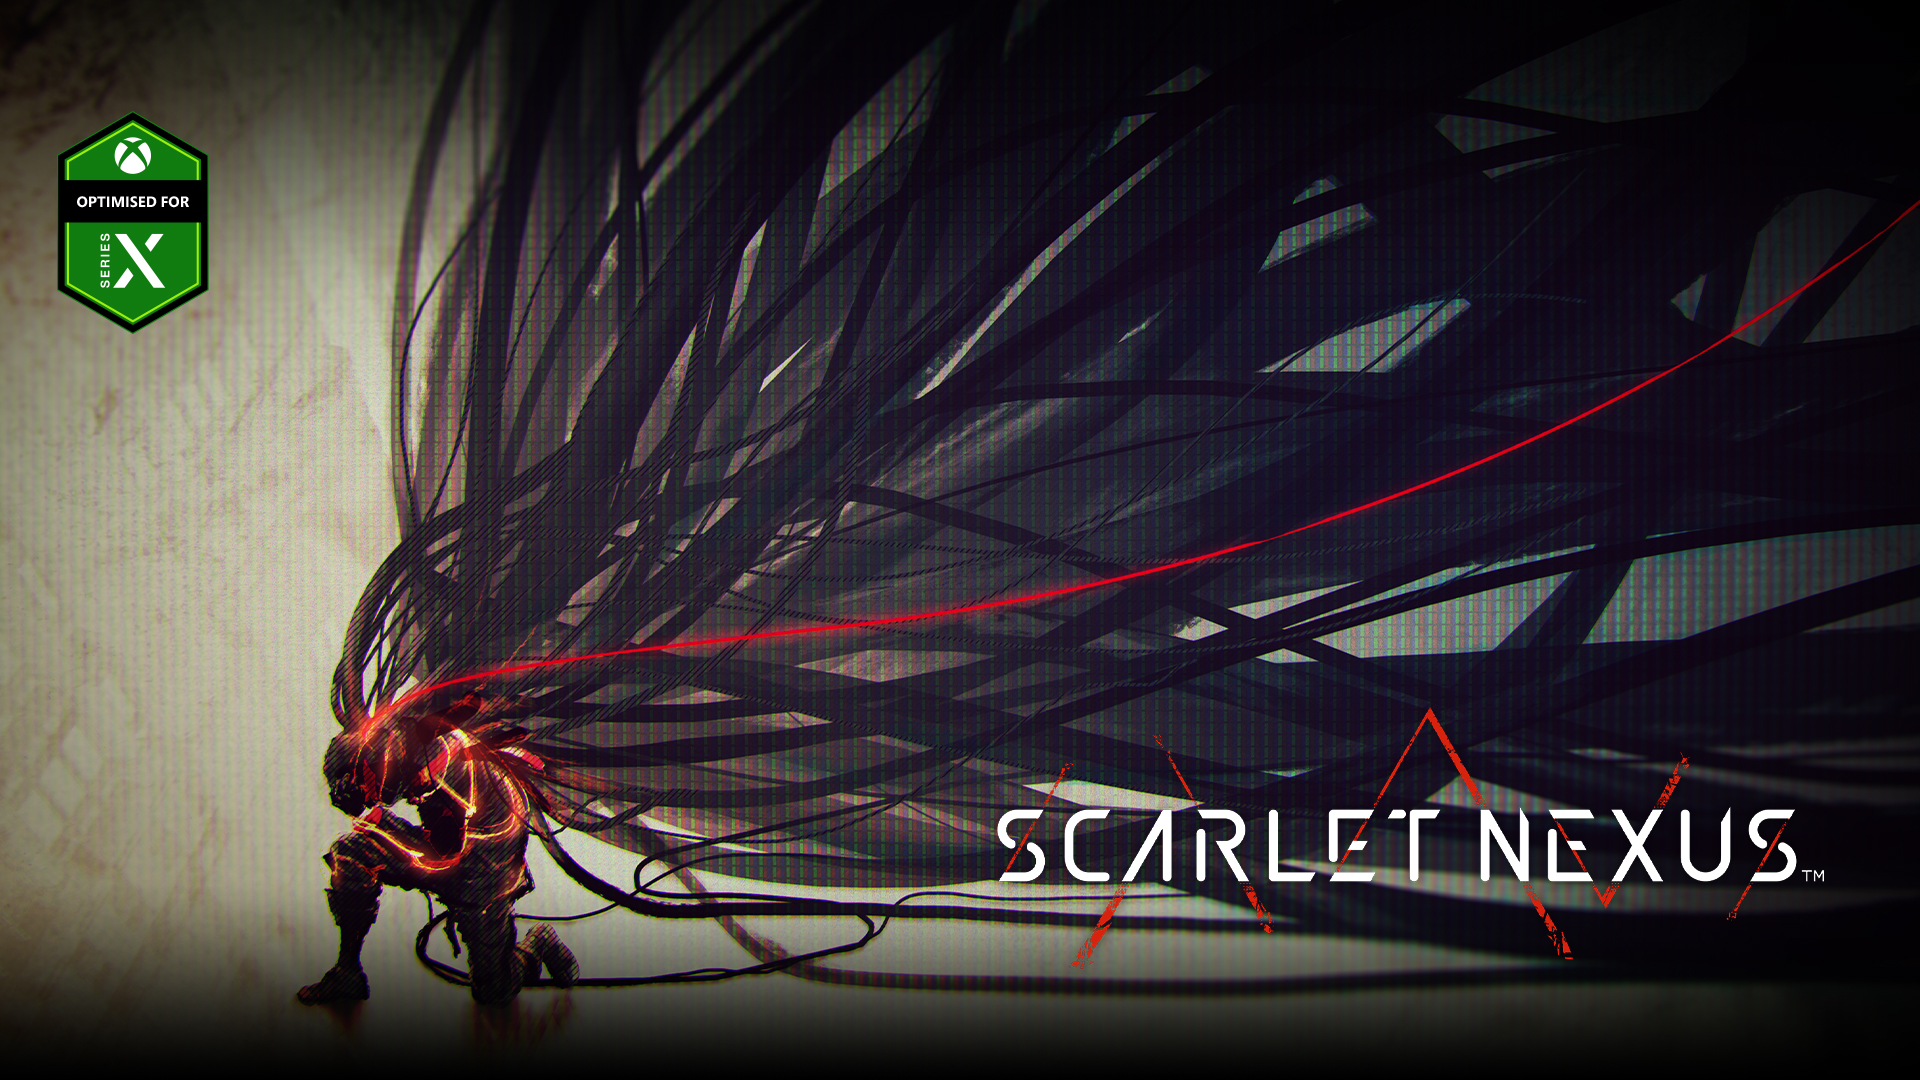 Scarlet Nexus, Optimised for Xbox Series X, A man kneels with large hair-like strands flowing from him